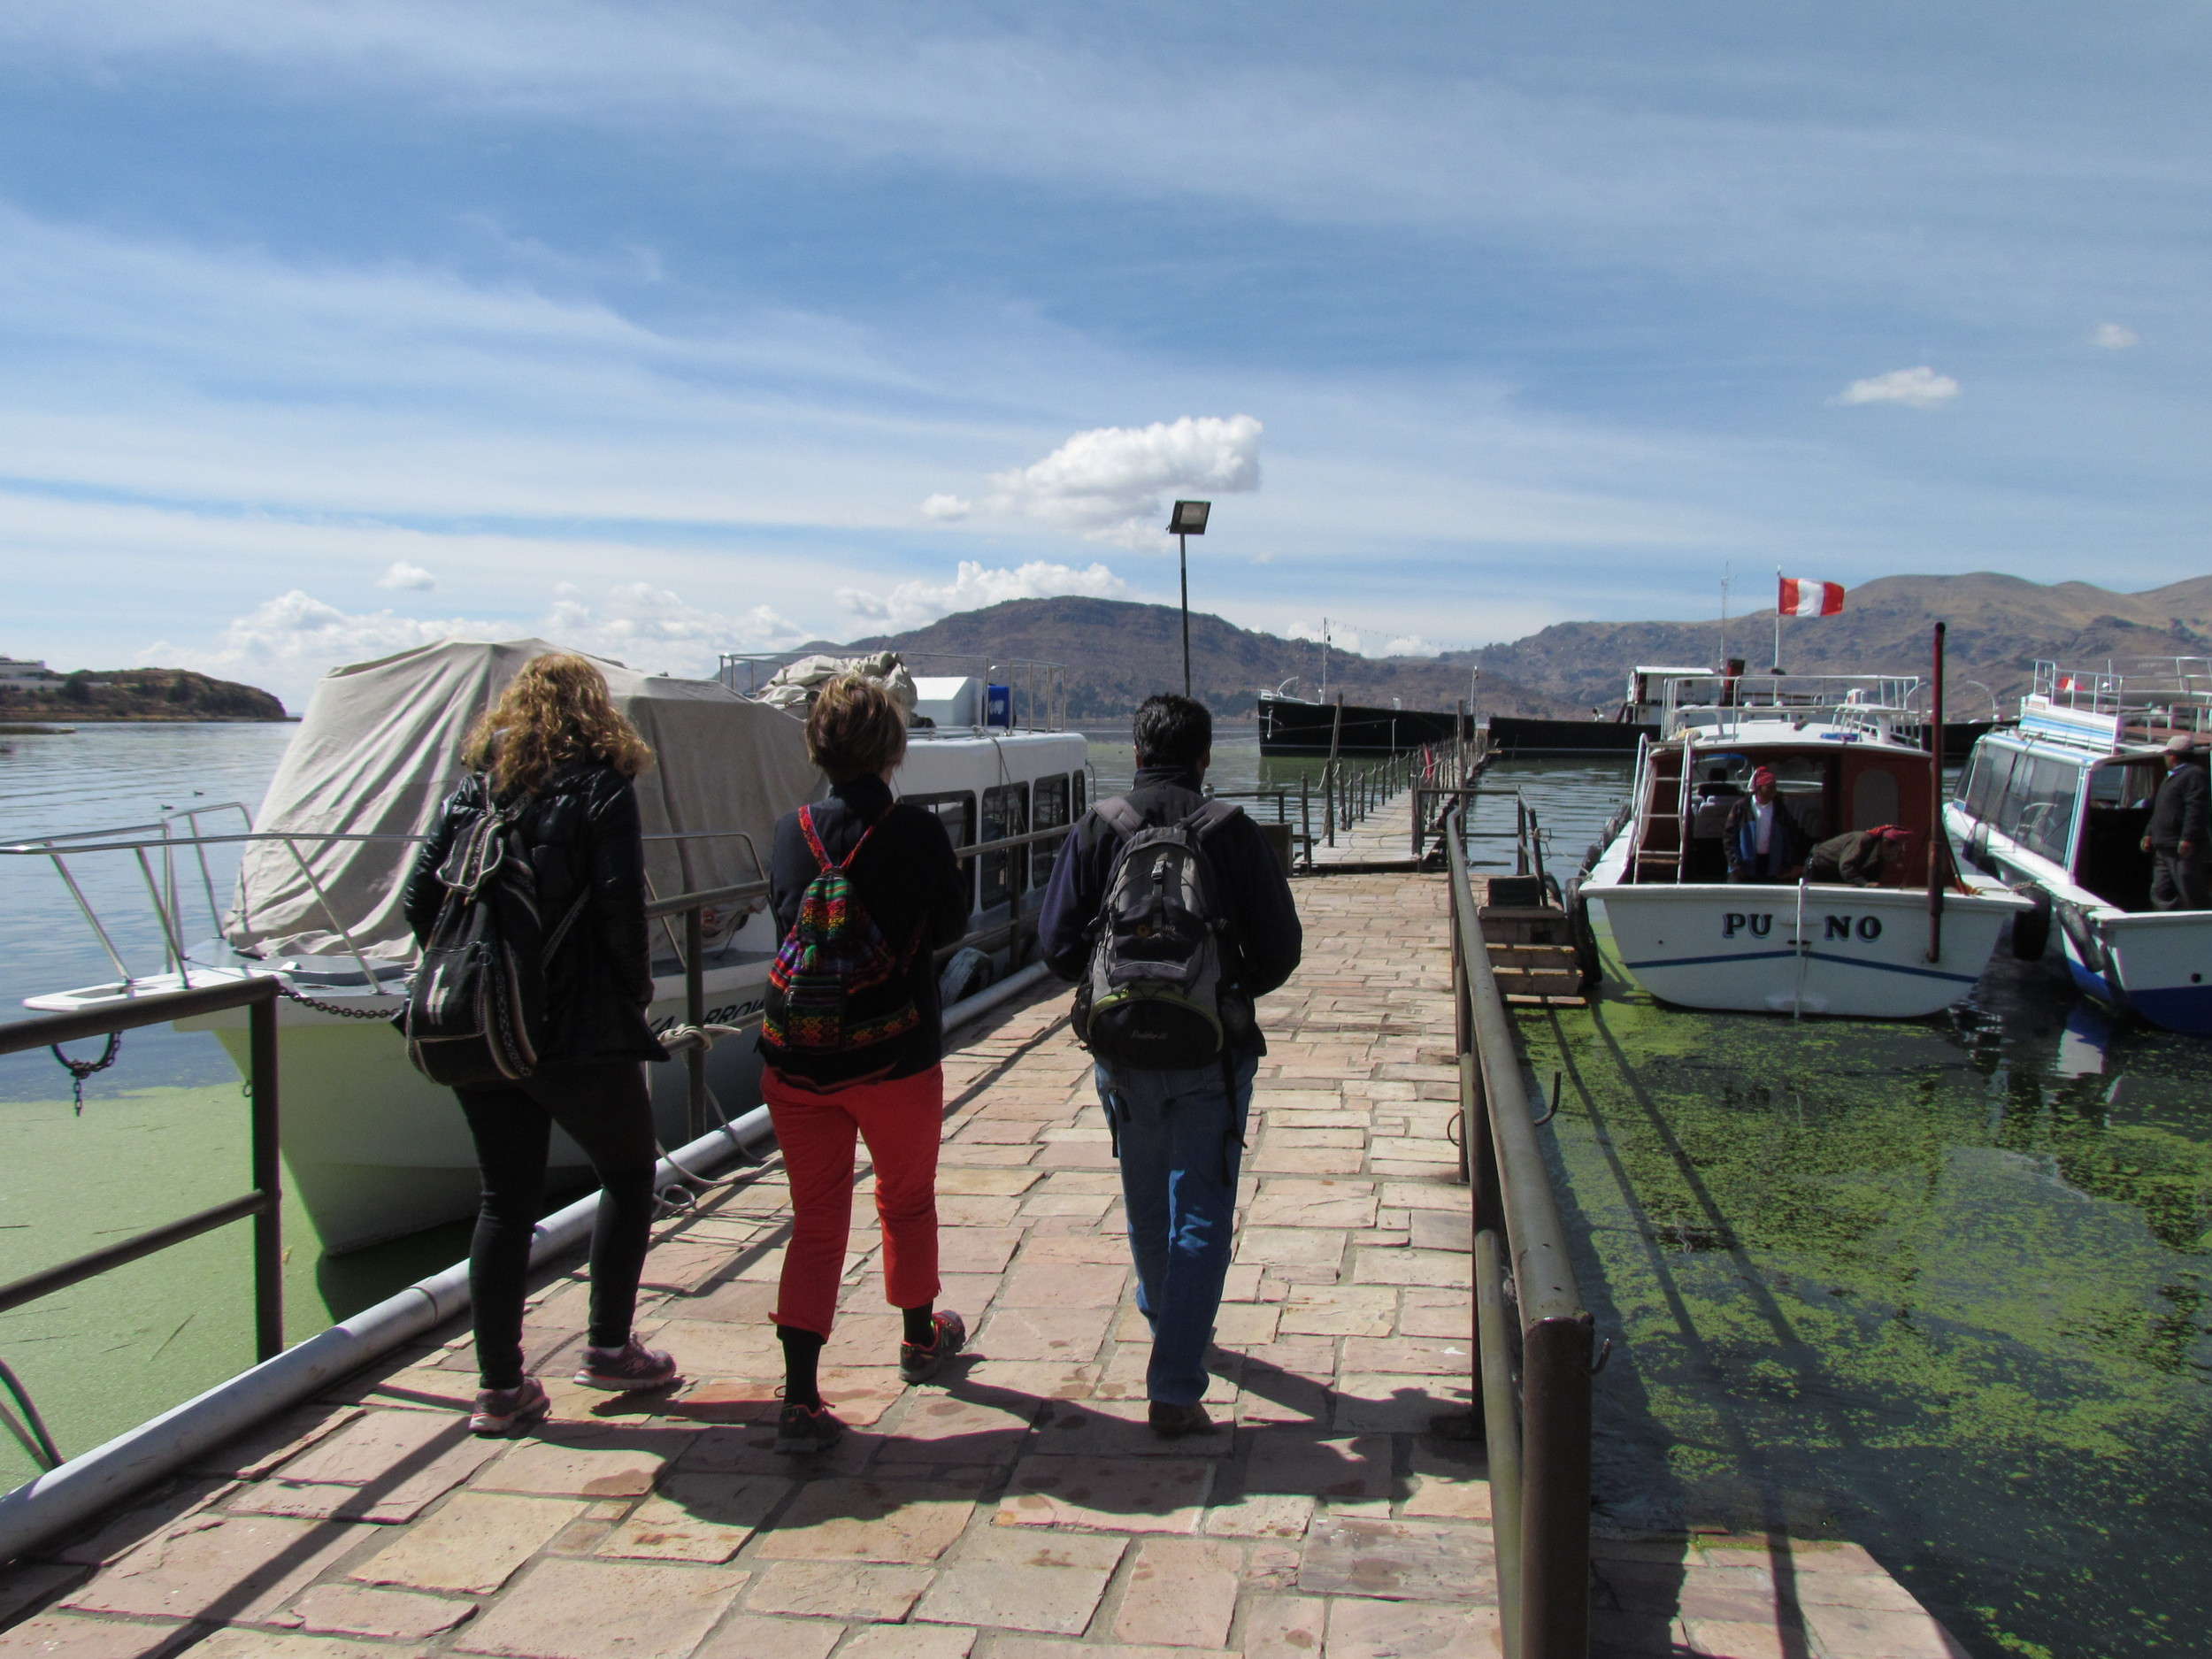 Heading on a day of adventure on lake Titicaca